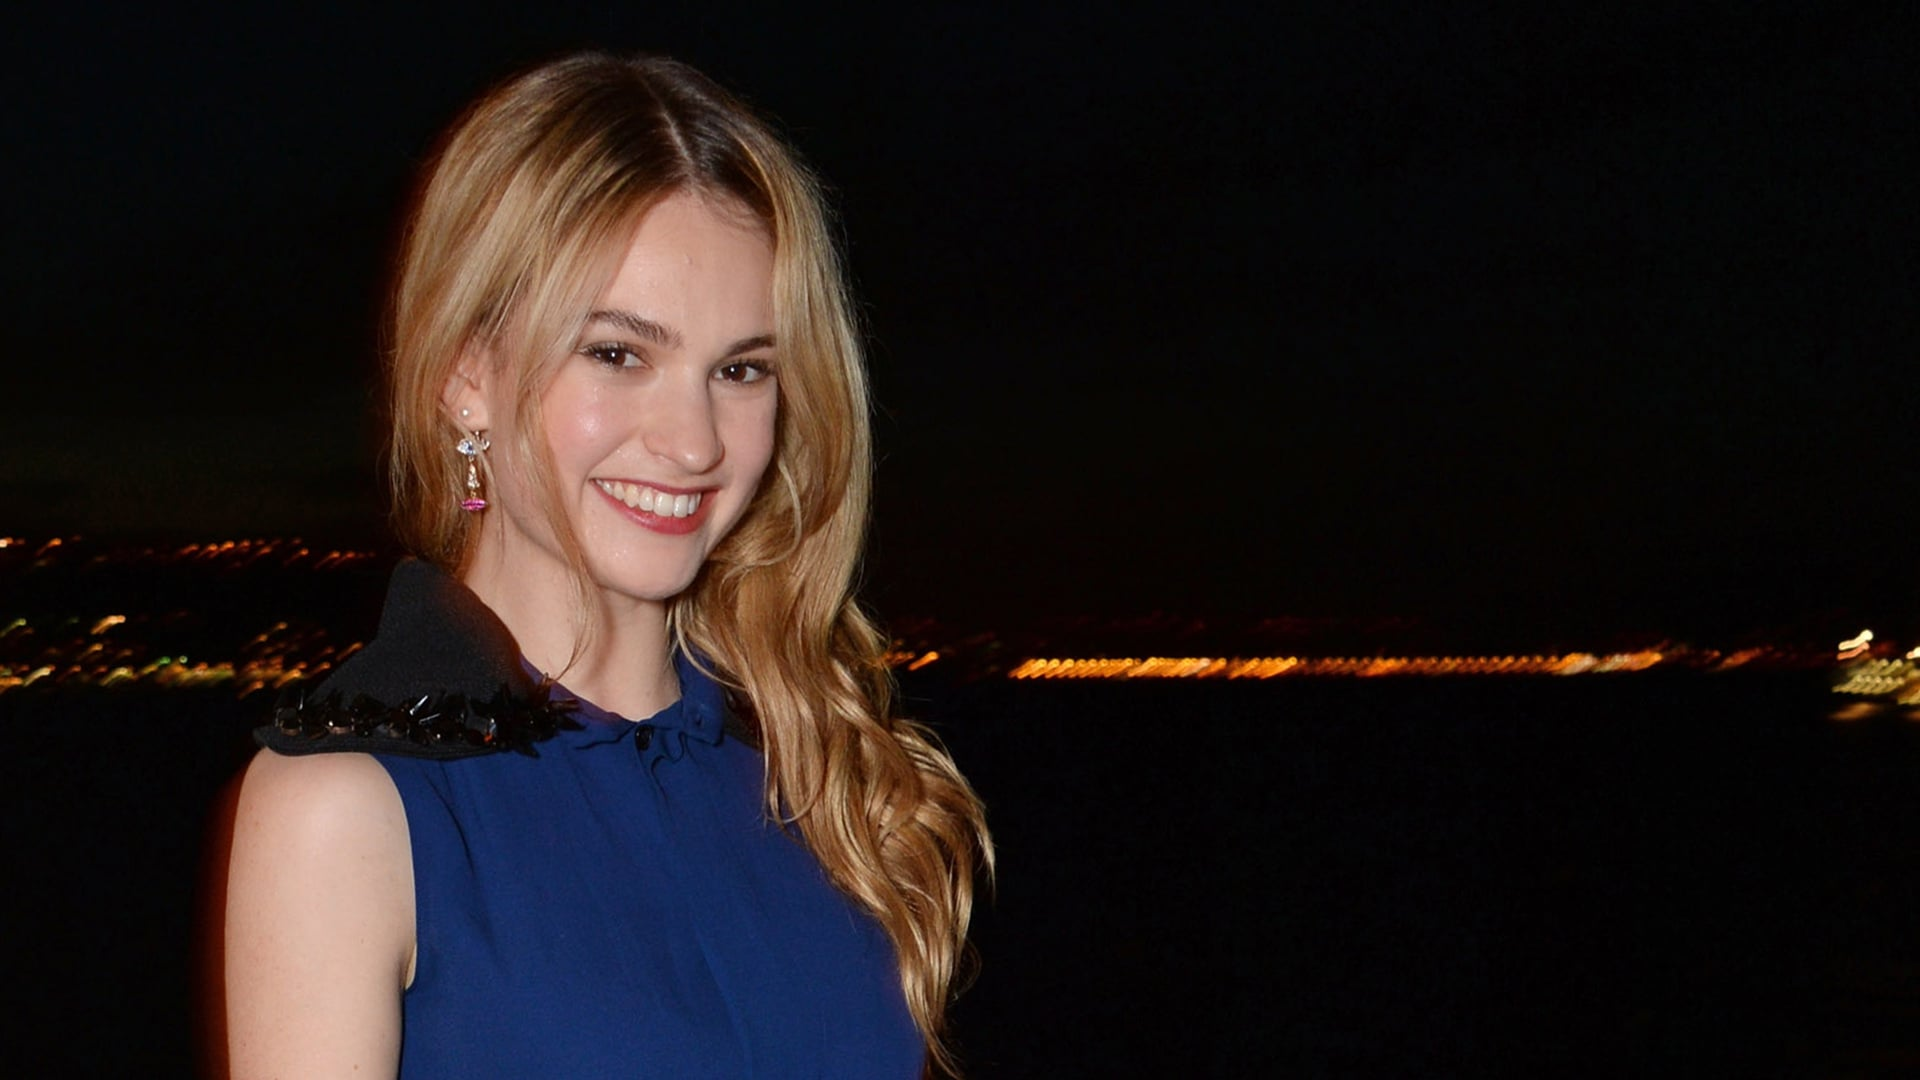 Lily James full HD image